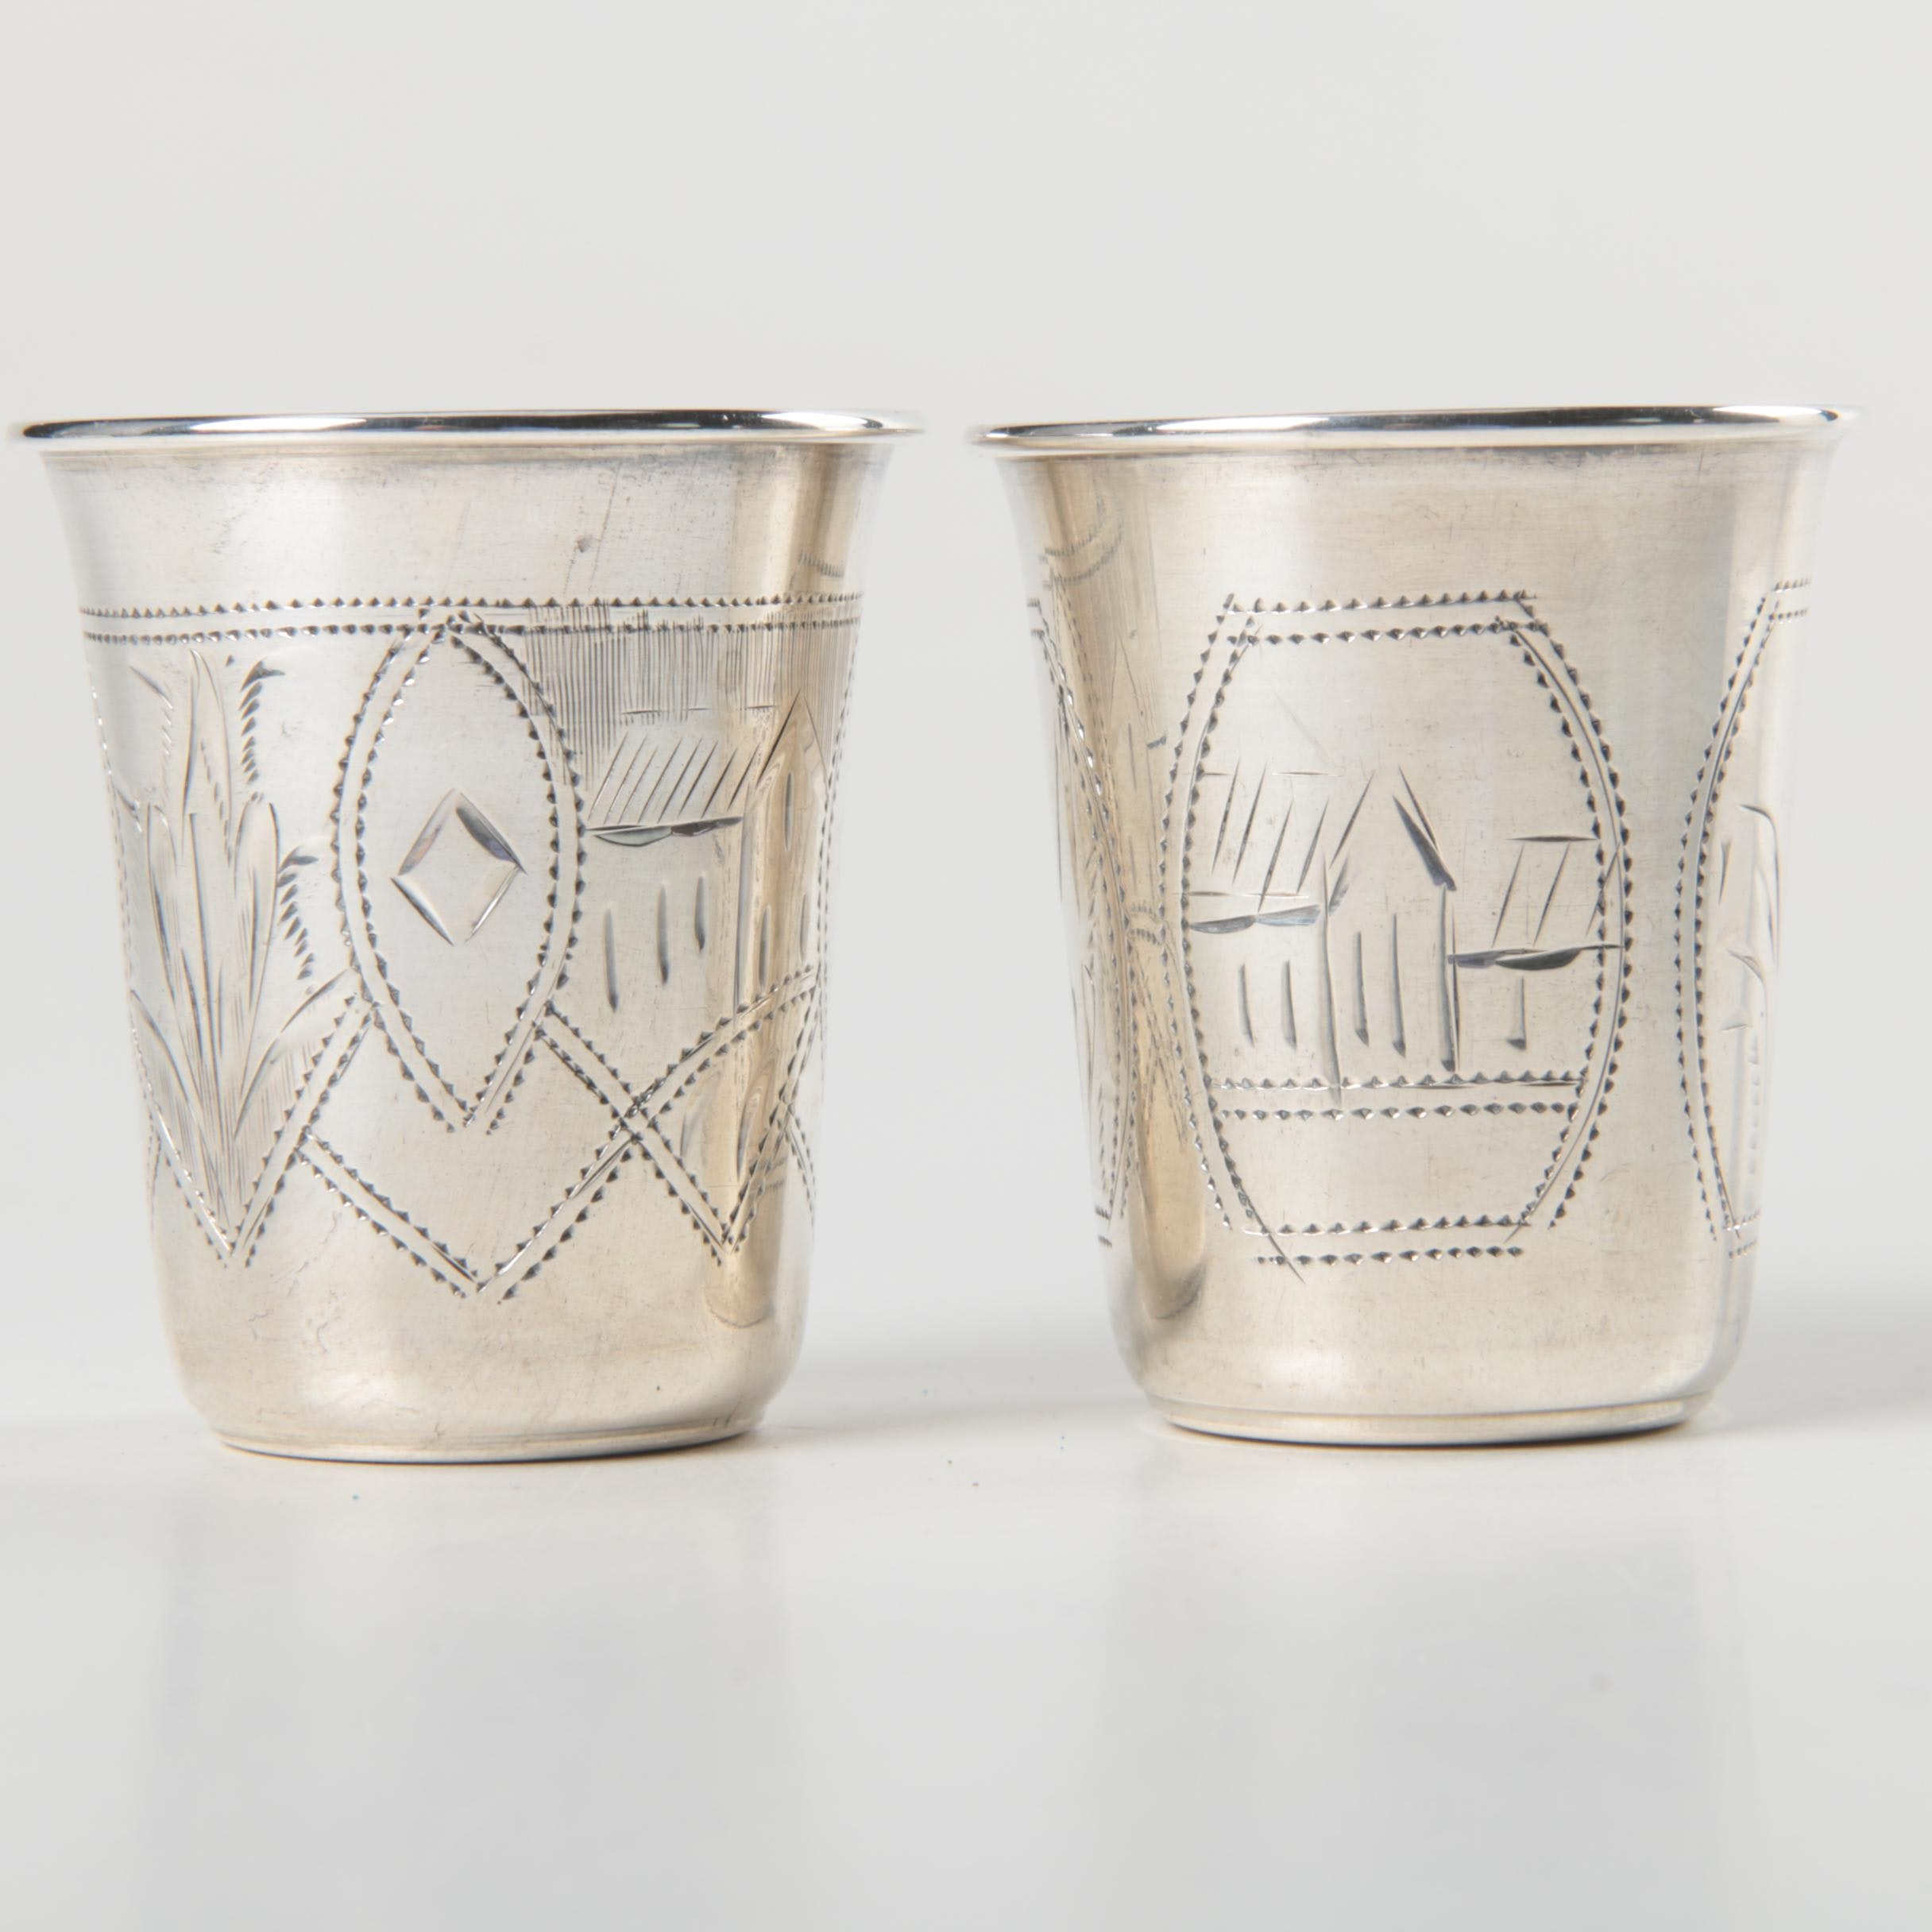 Etched 800 Russian Silver Vodka Cups